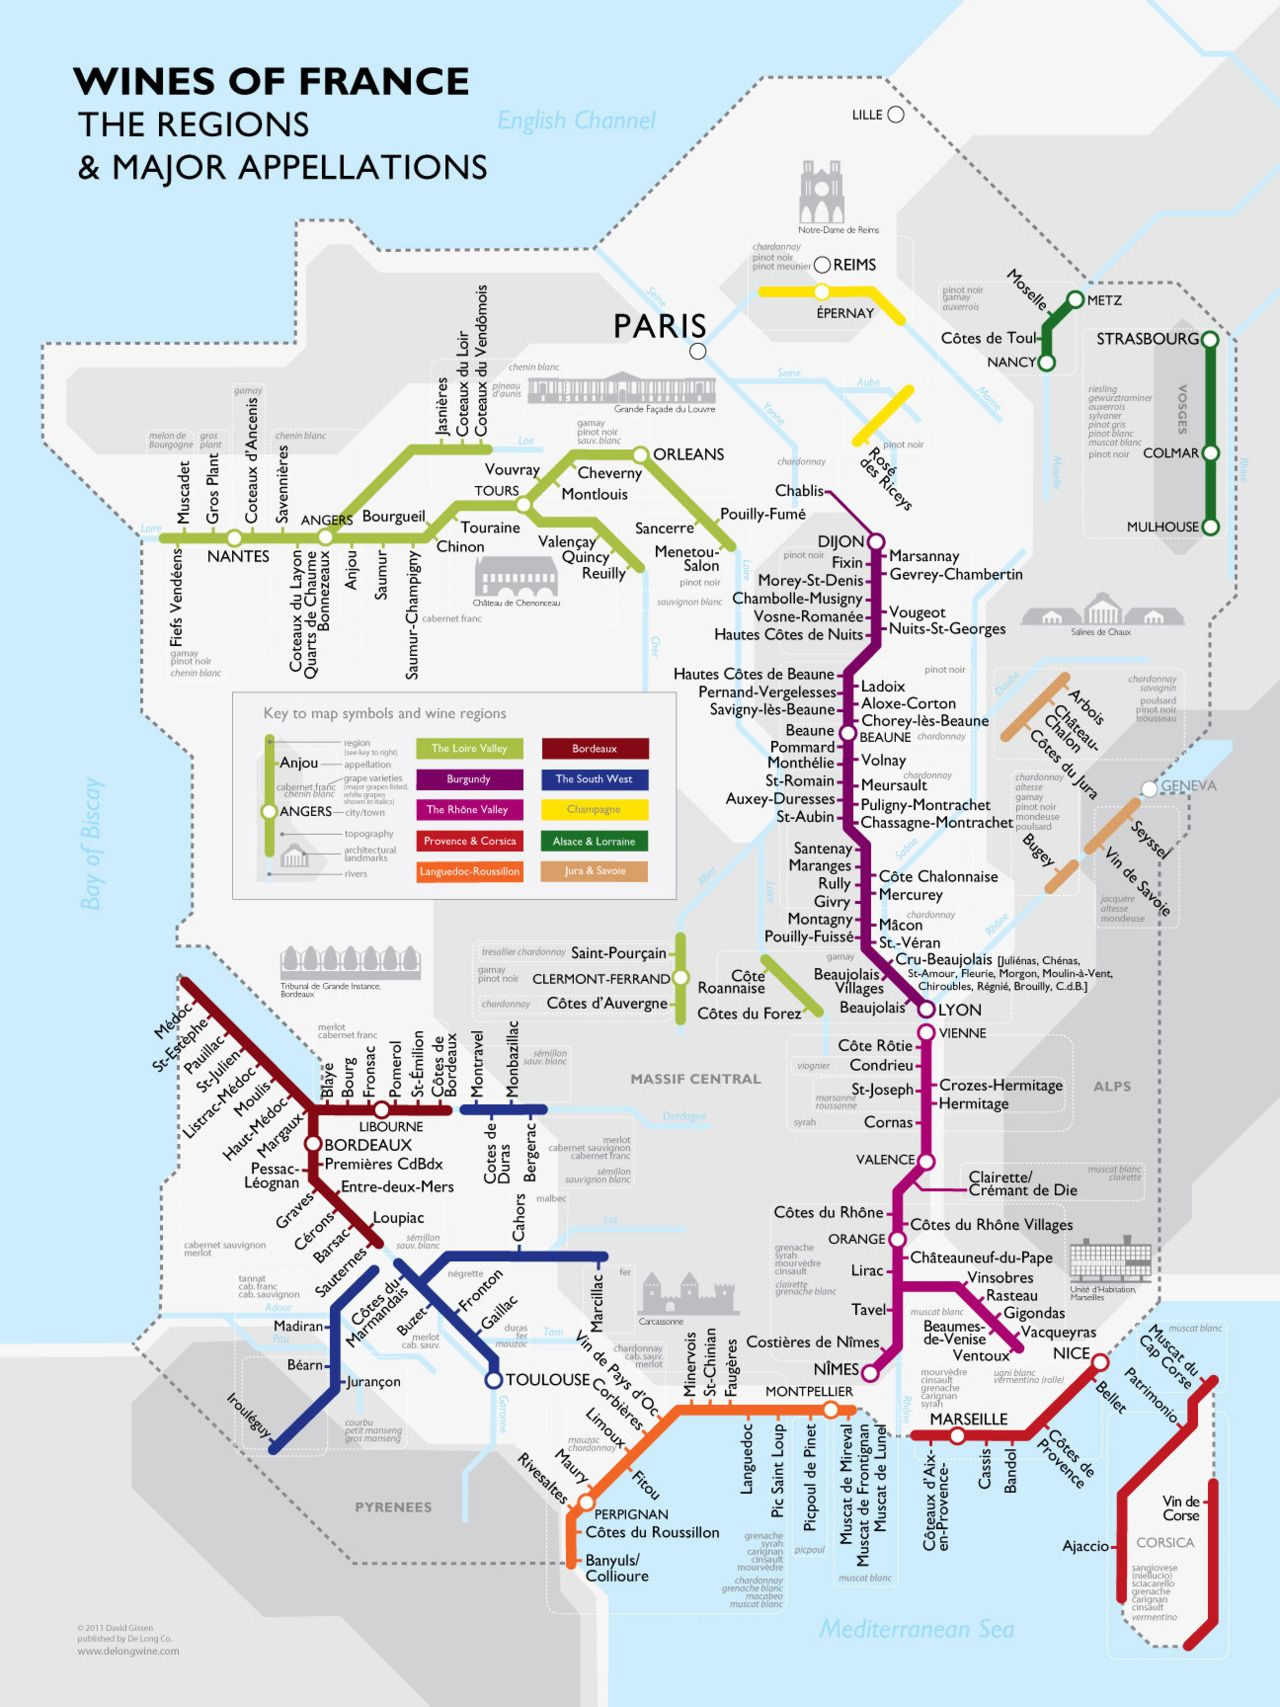 Amazing Map Of Wines Of France Regions And Major Appellations